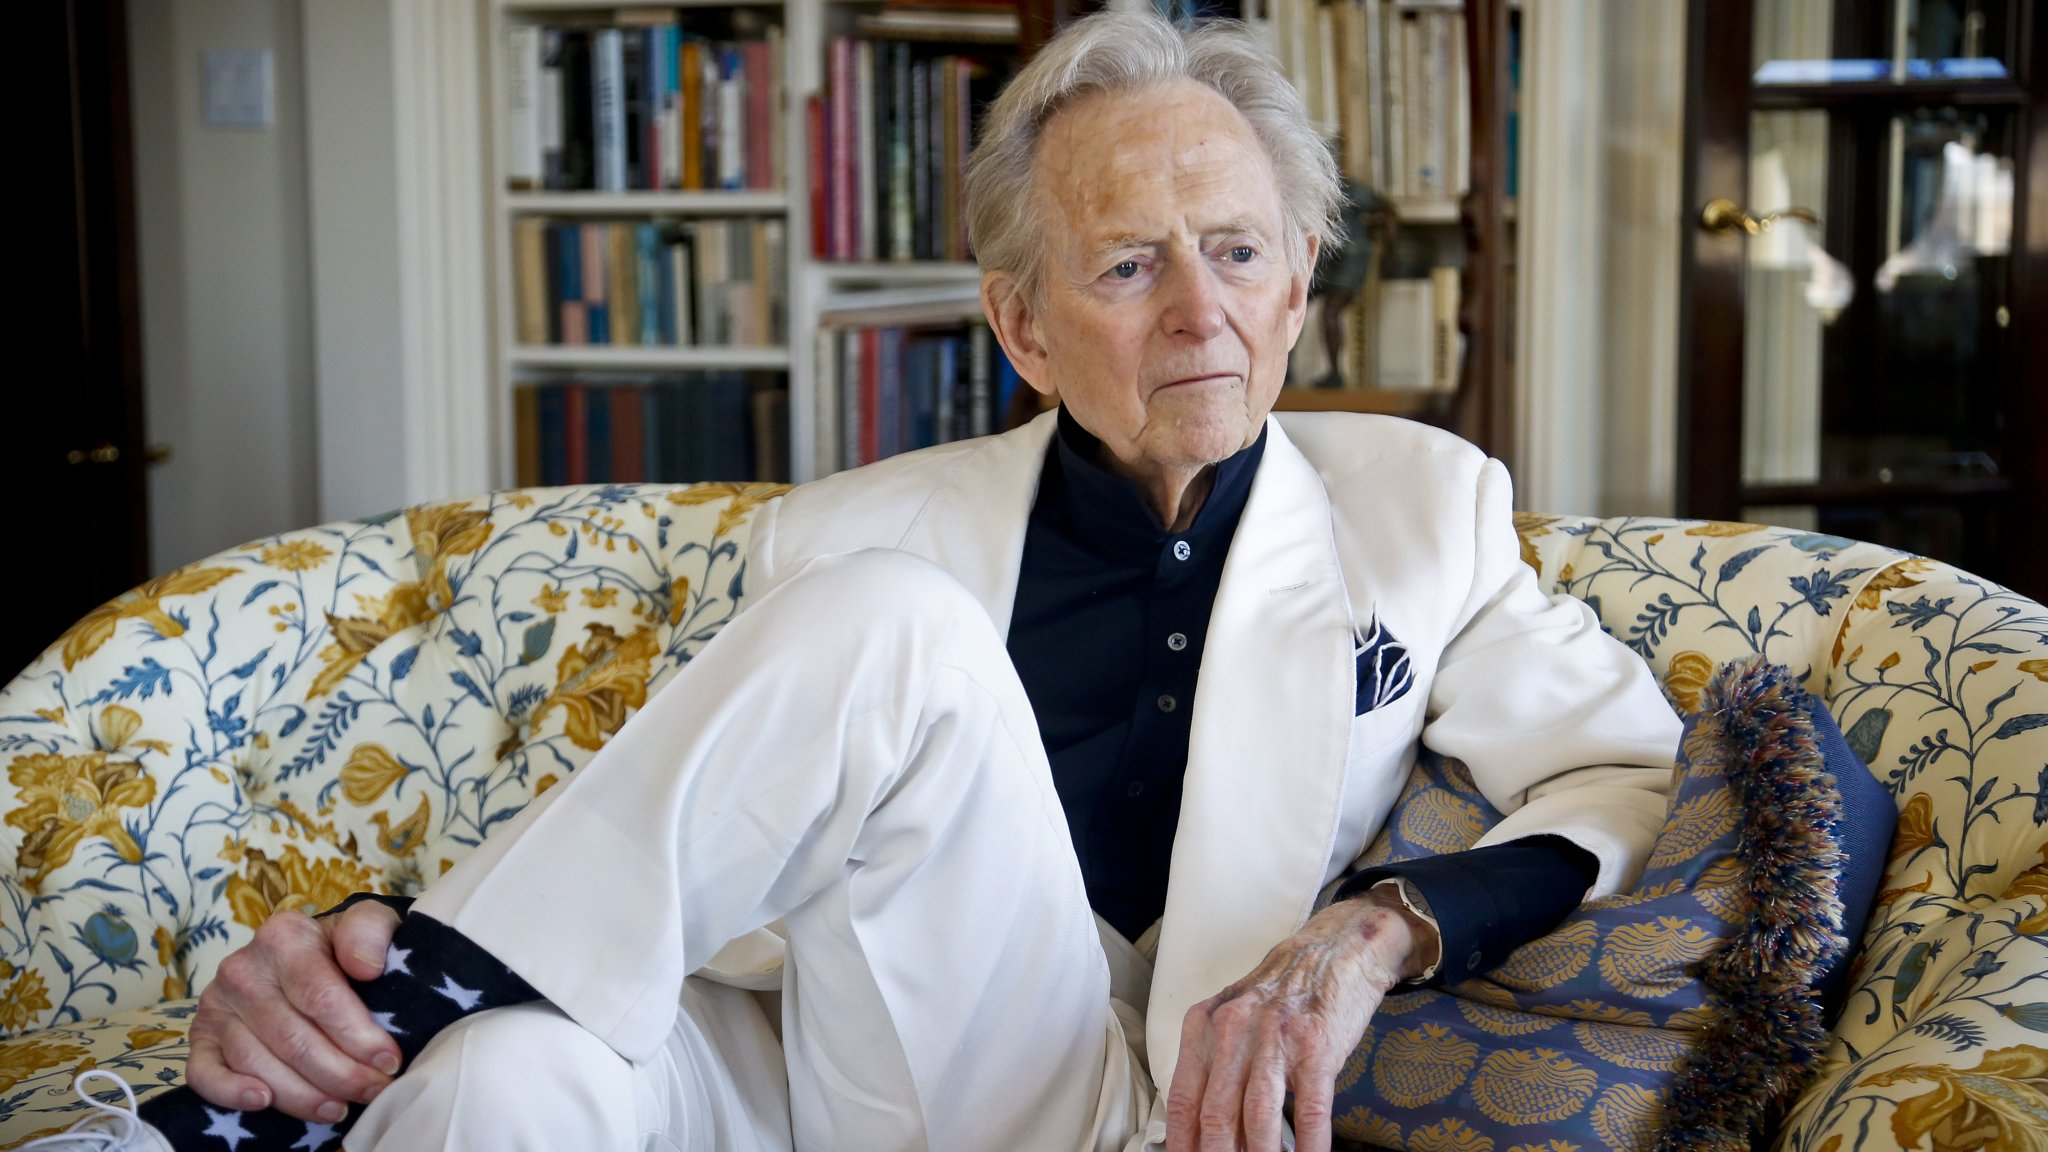 tom wolfes essay last american hero Back to blood tom wolfe reports on the ever-continuing crisis of american masculinity the wolfe hero but one last thing on their minds - back to blood.